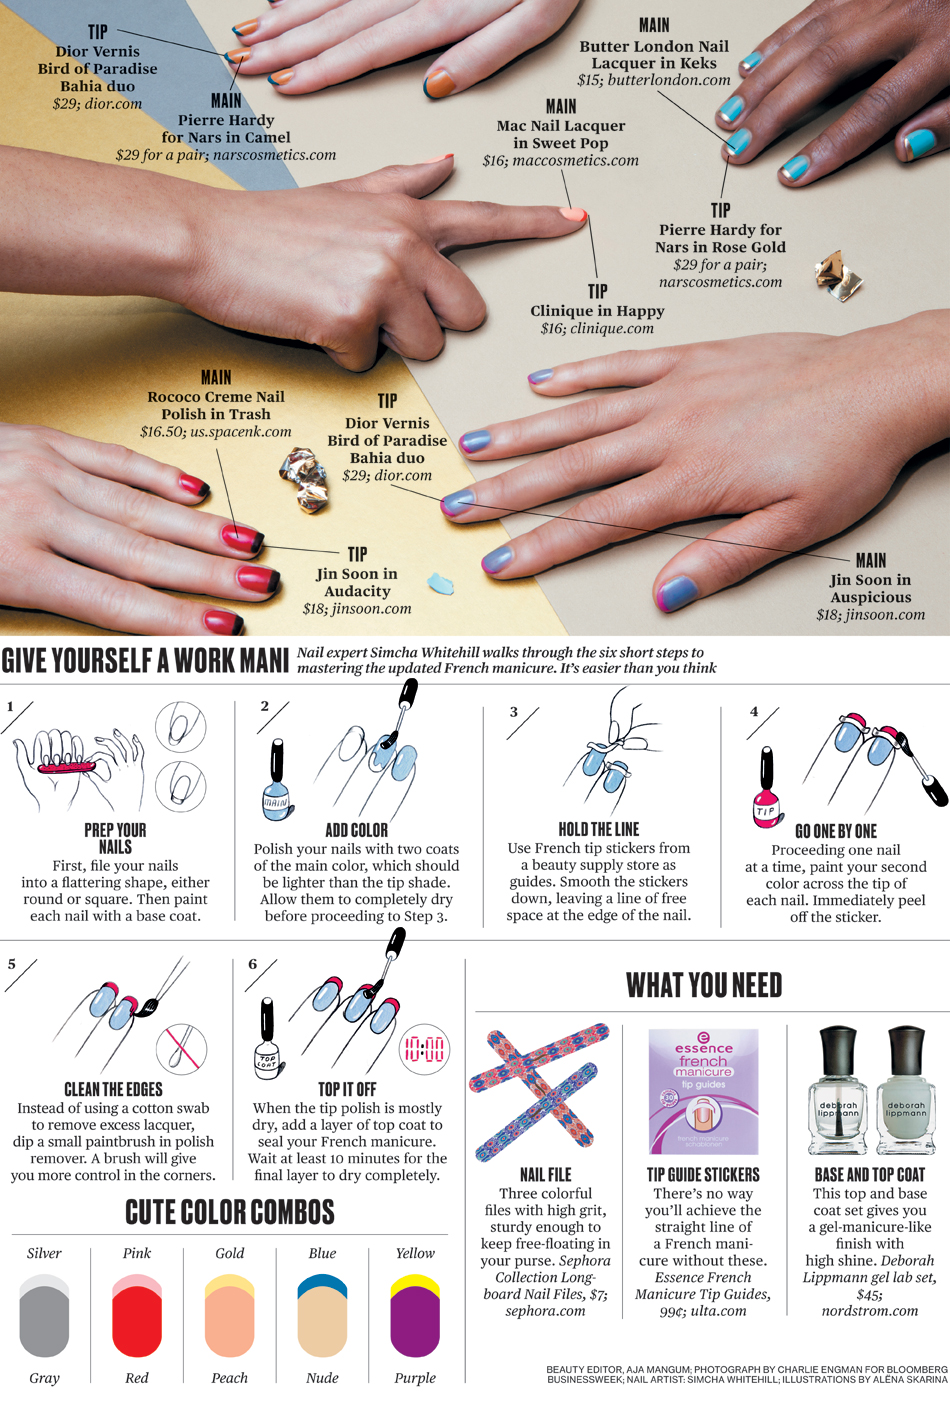 The New French Manicure: A Guide - Bloomberg